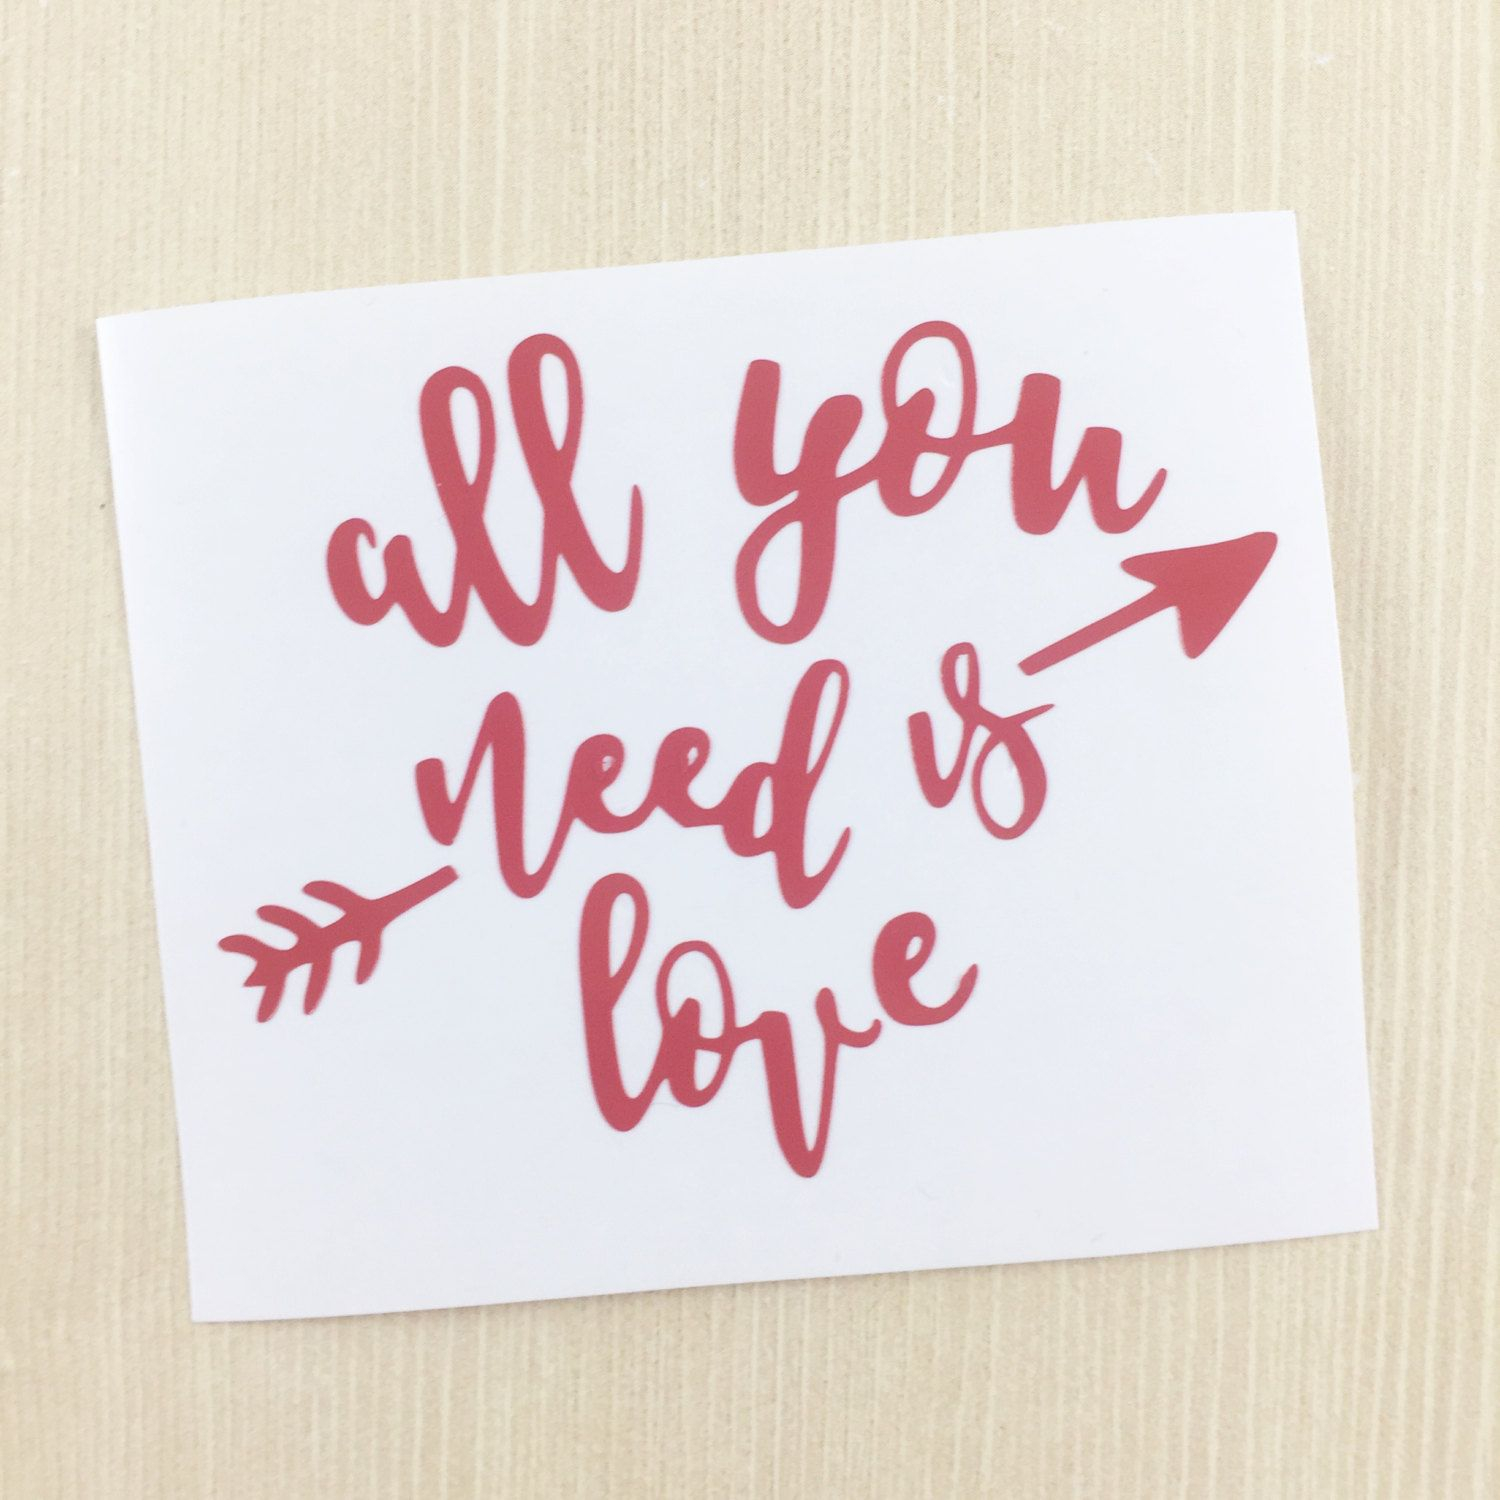 All You Need Is Love Decal - Love Sticker - iPad Decal - Valentine Gift - Girlfriend Gift - Yeti Decal - Water Bottle Decal - Love Car Decal by SimplyGracefulDesign on Etsy